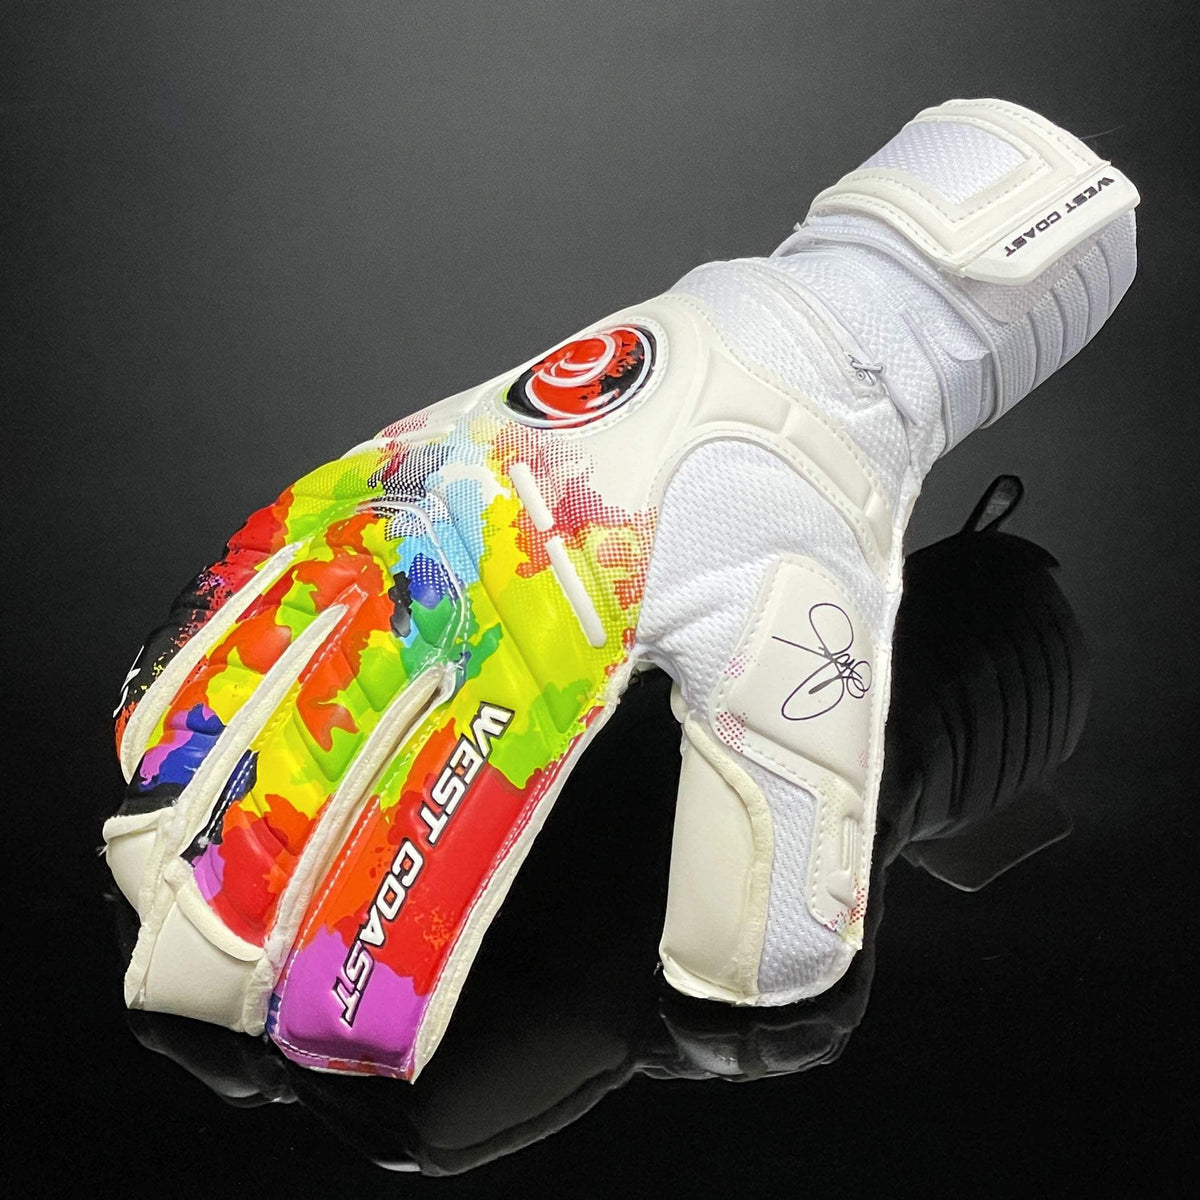 SPYDER S24F FREI PRO MODEL - West Coast Goalkeeping